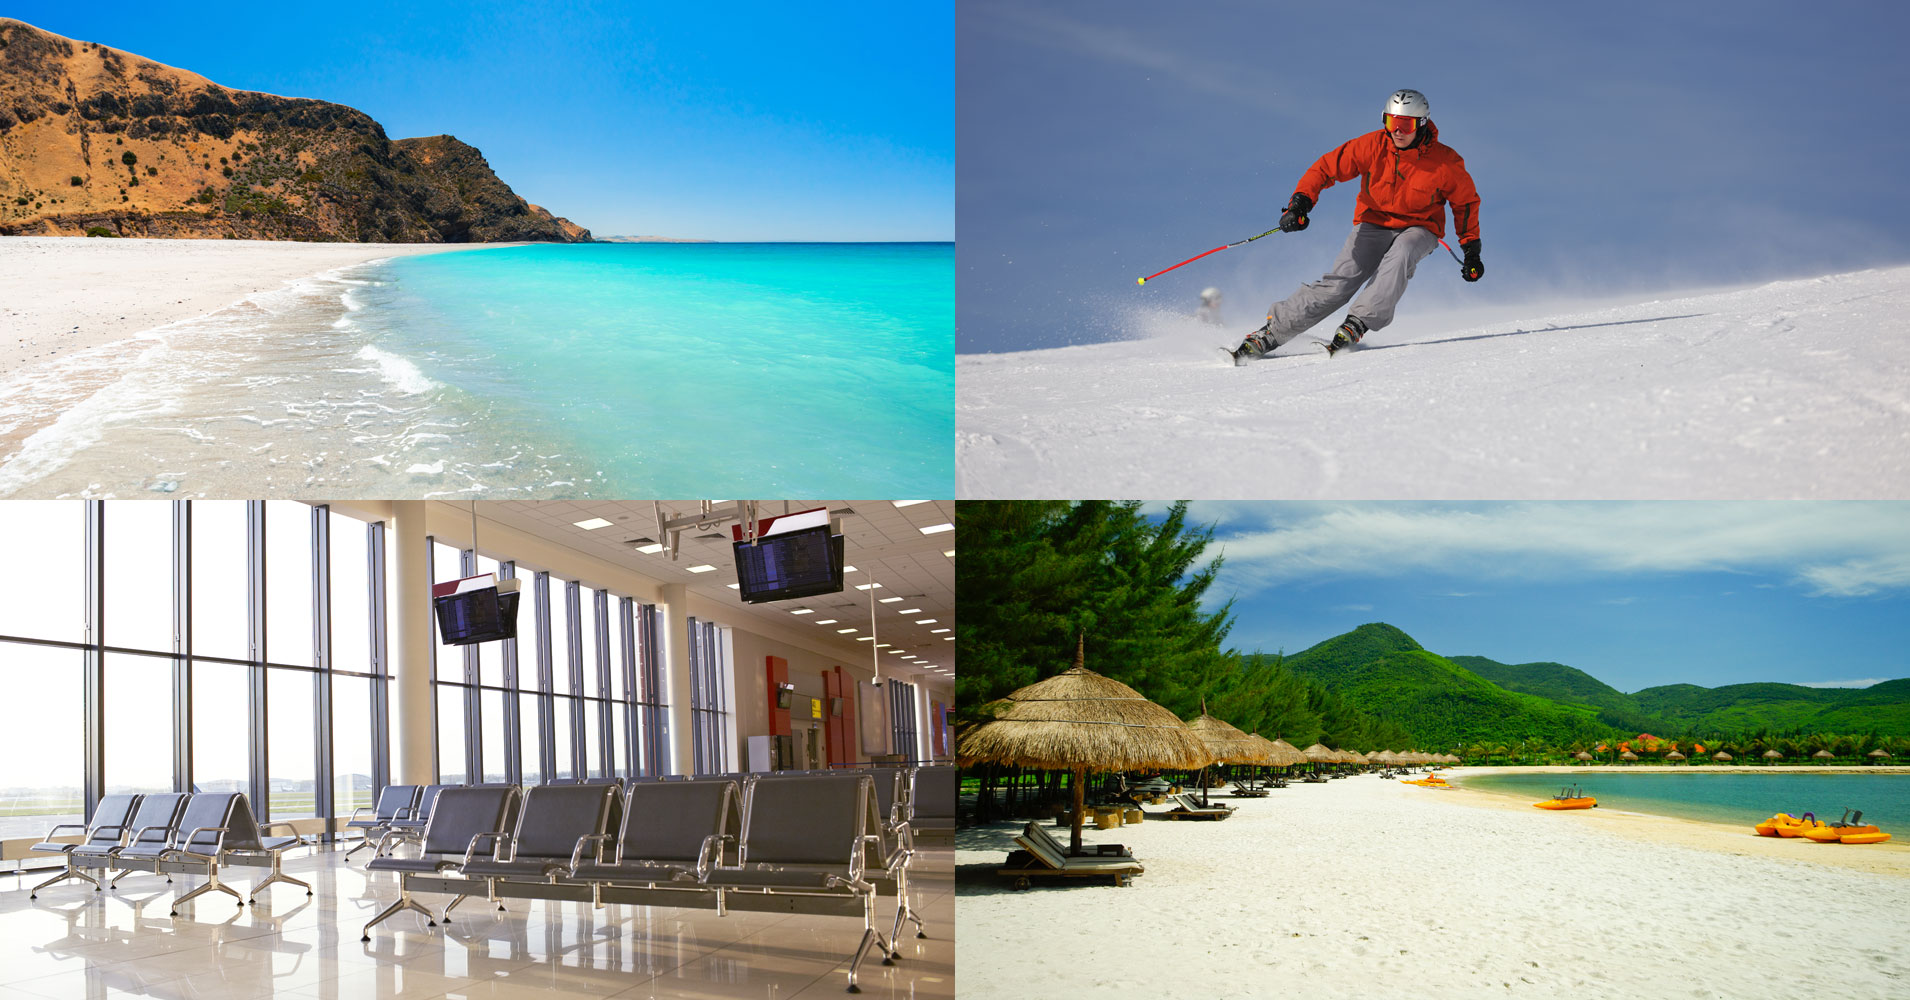 Image of summer and ski holidays, airport hall and cruise ship - Port transfer by Cannons Chauffeur Services